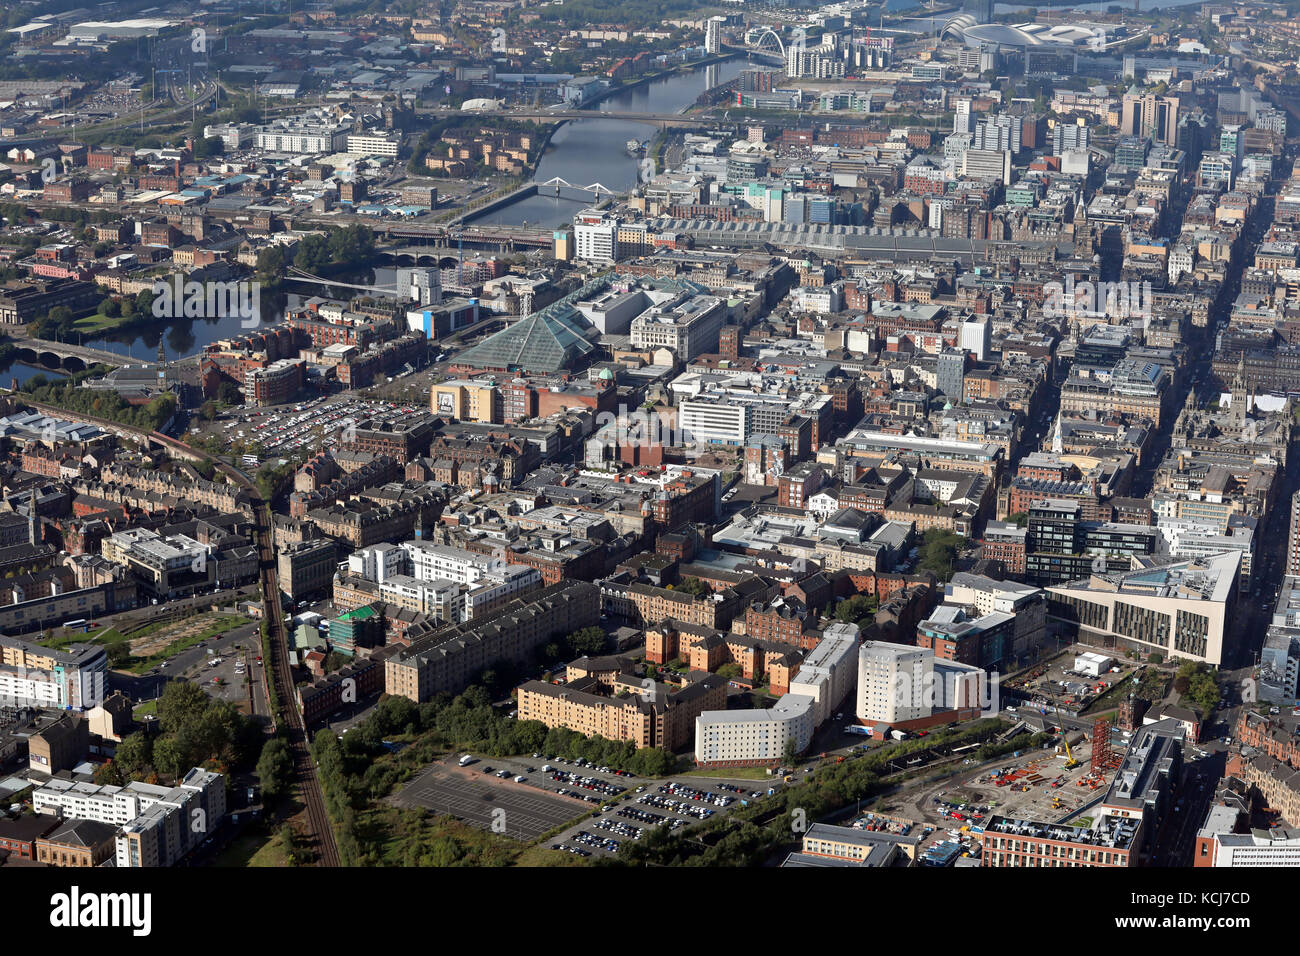 aerial view of the Glasgow city centre skyline towards the Station & St Enochs Shopping Centre, Scotland, UK - Stock Image